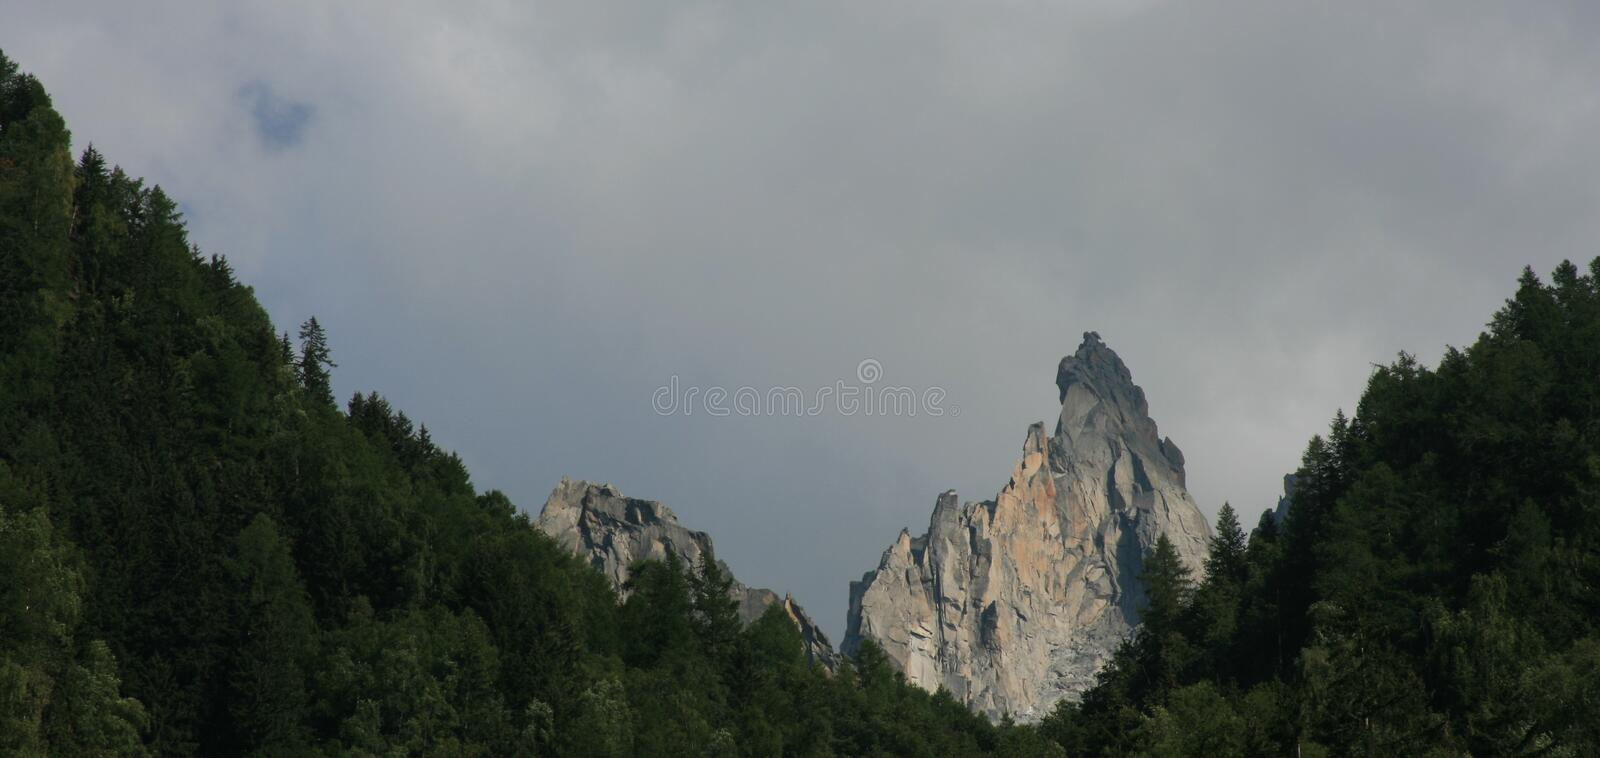 Top mountain in trees royalty free stock photo